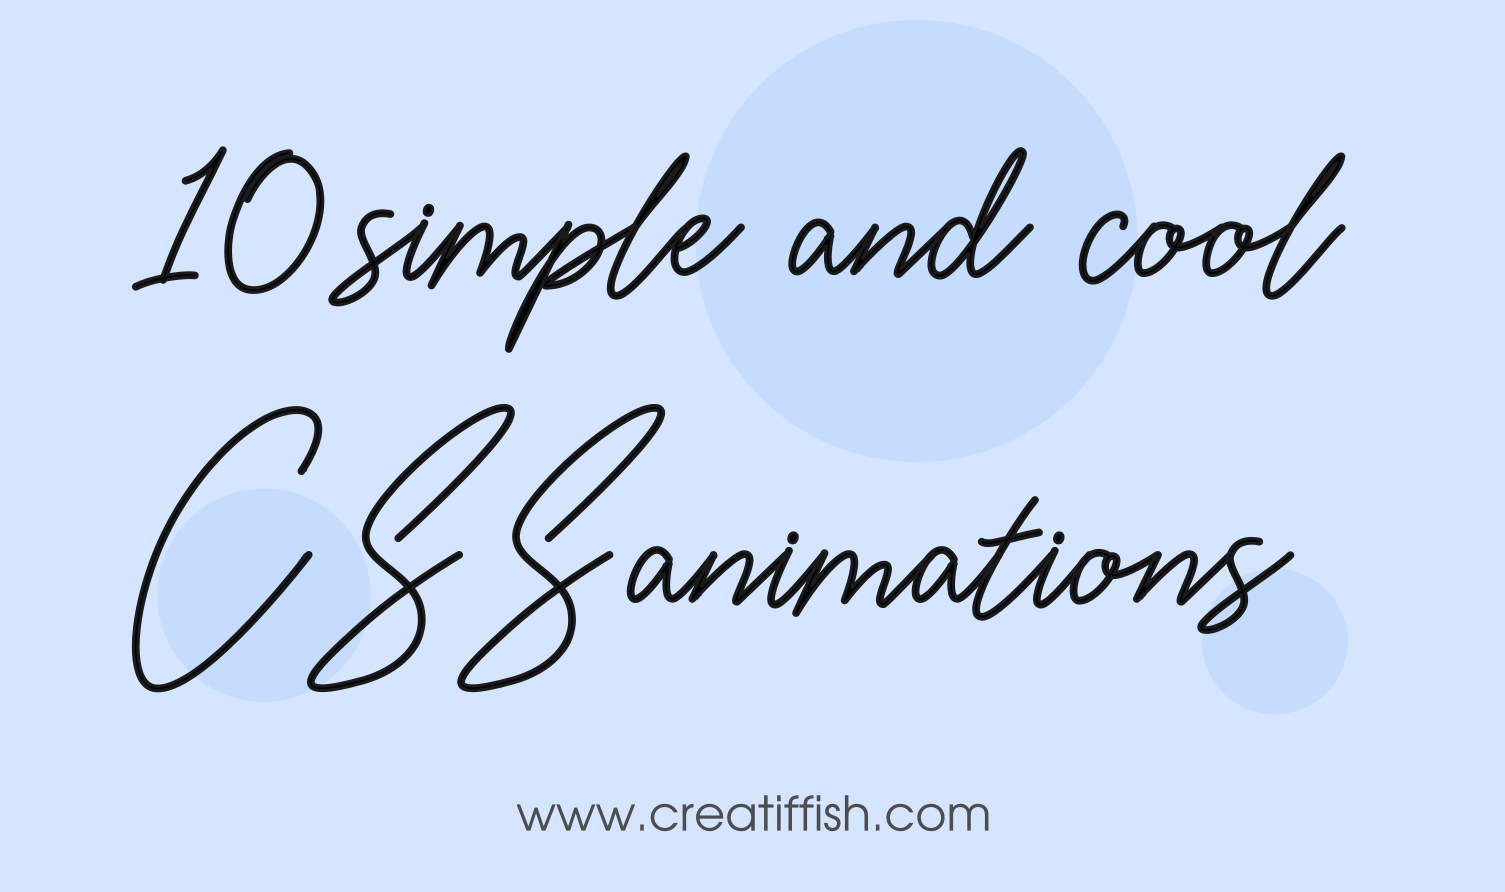 20 simple and cool CSS animation examples and source codes to use in your website